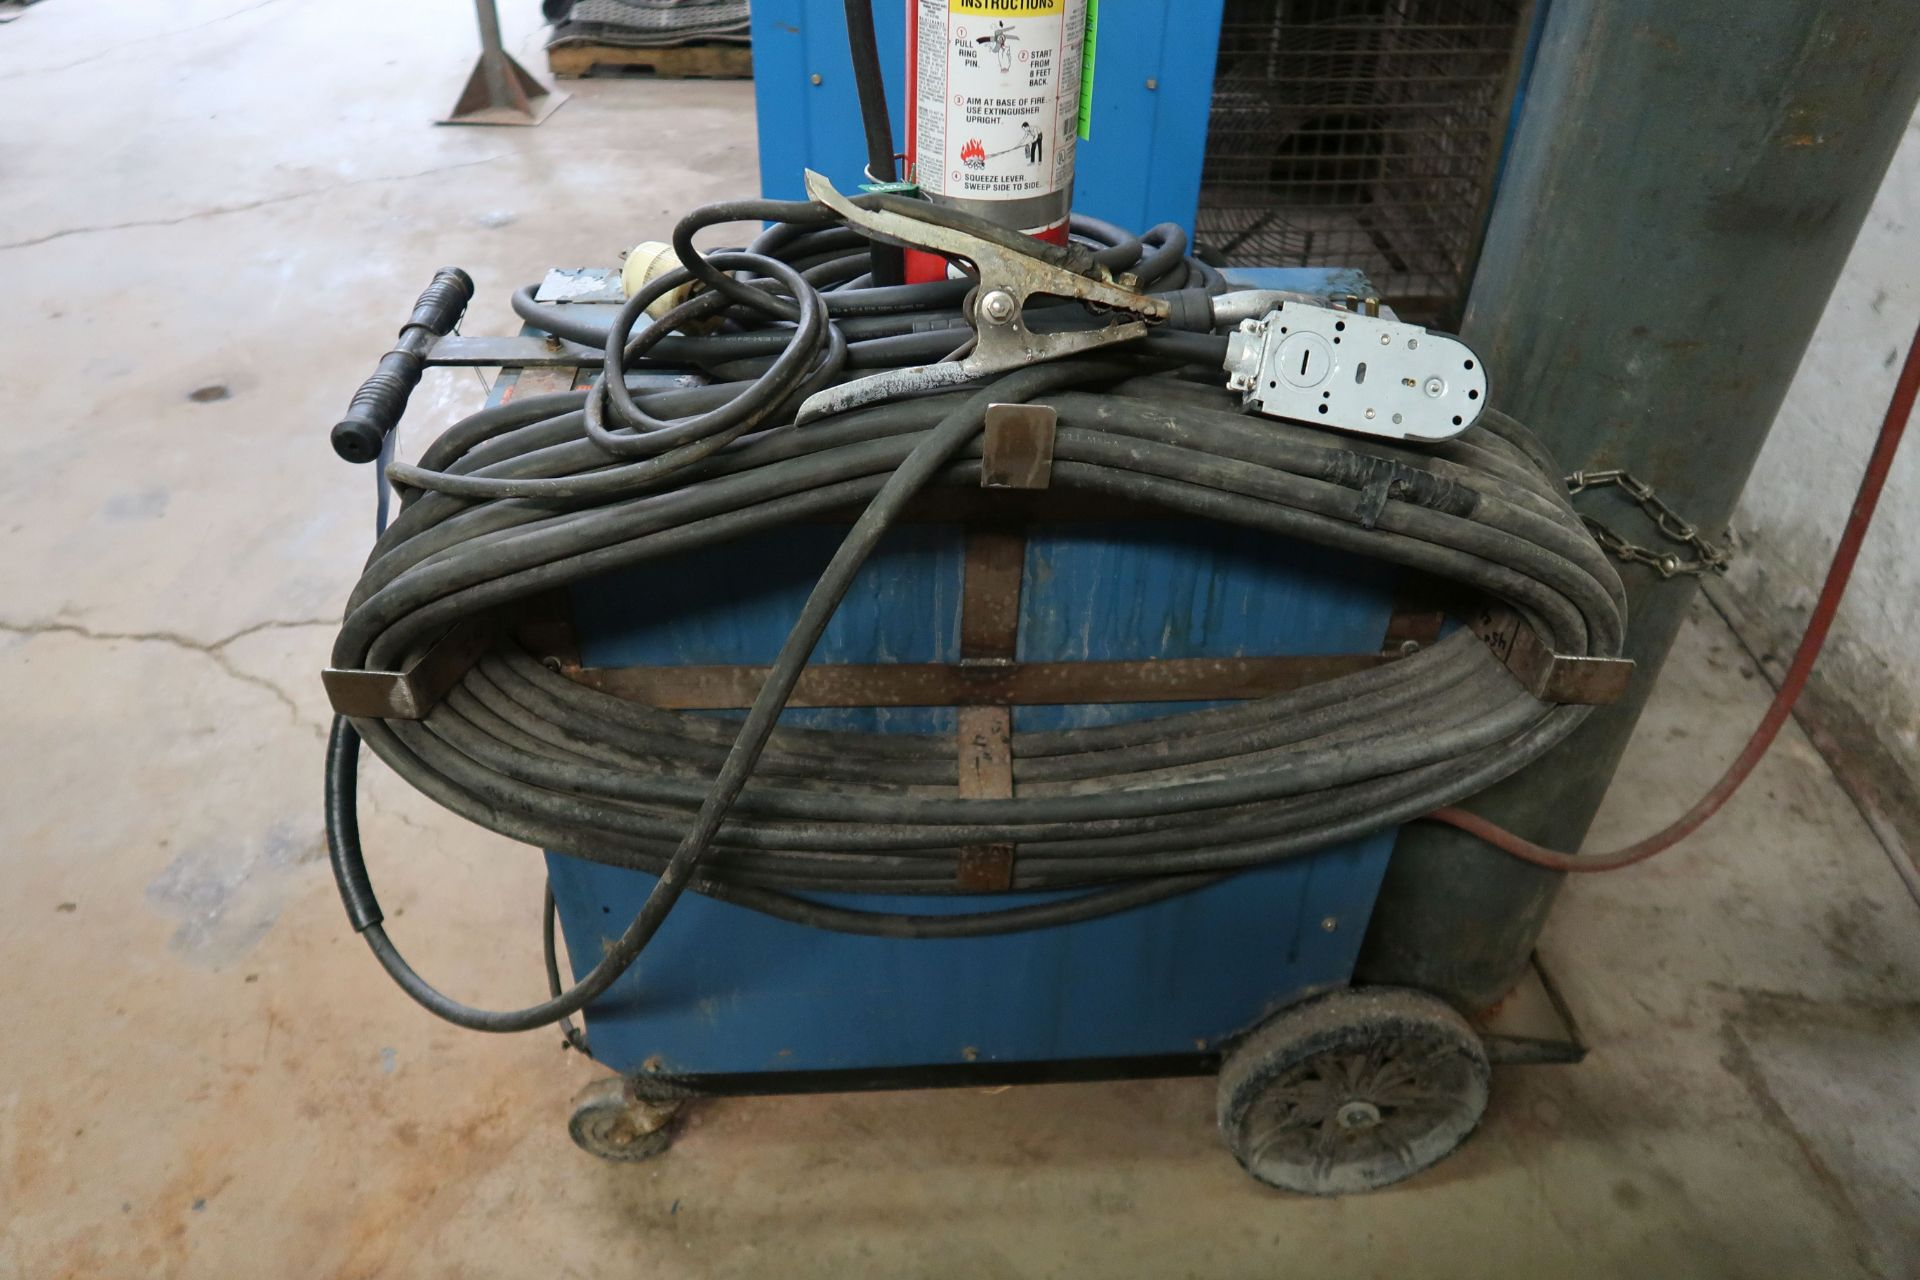 200 AMP MILLER MODEL MILLERMATIC 200 CONSTANT POTENTIAL DC ARC WELDING POWER SOURCE AND WIRE CONTROL - Image 4 of 5